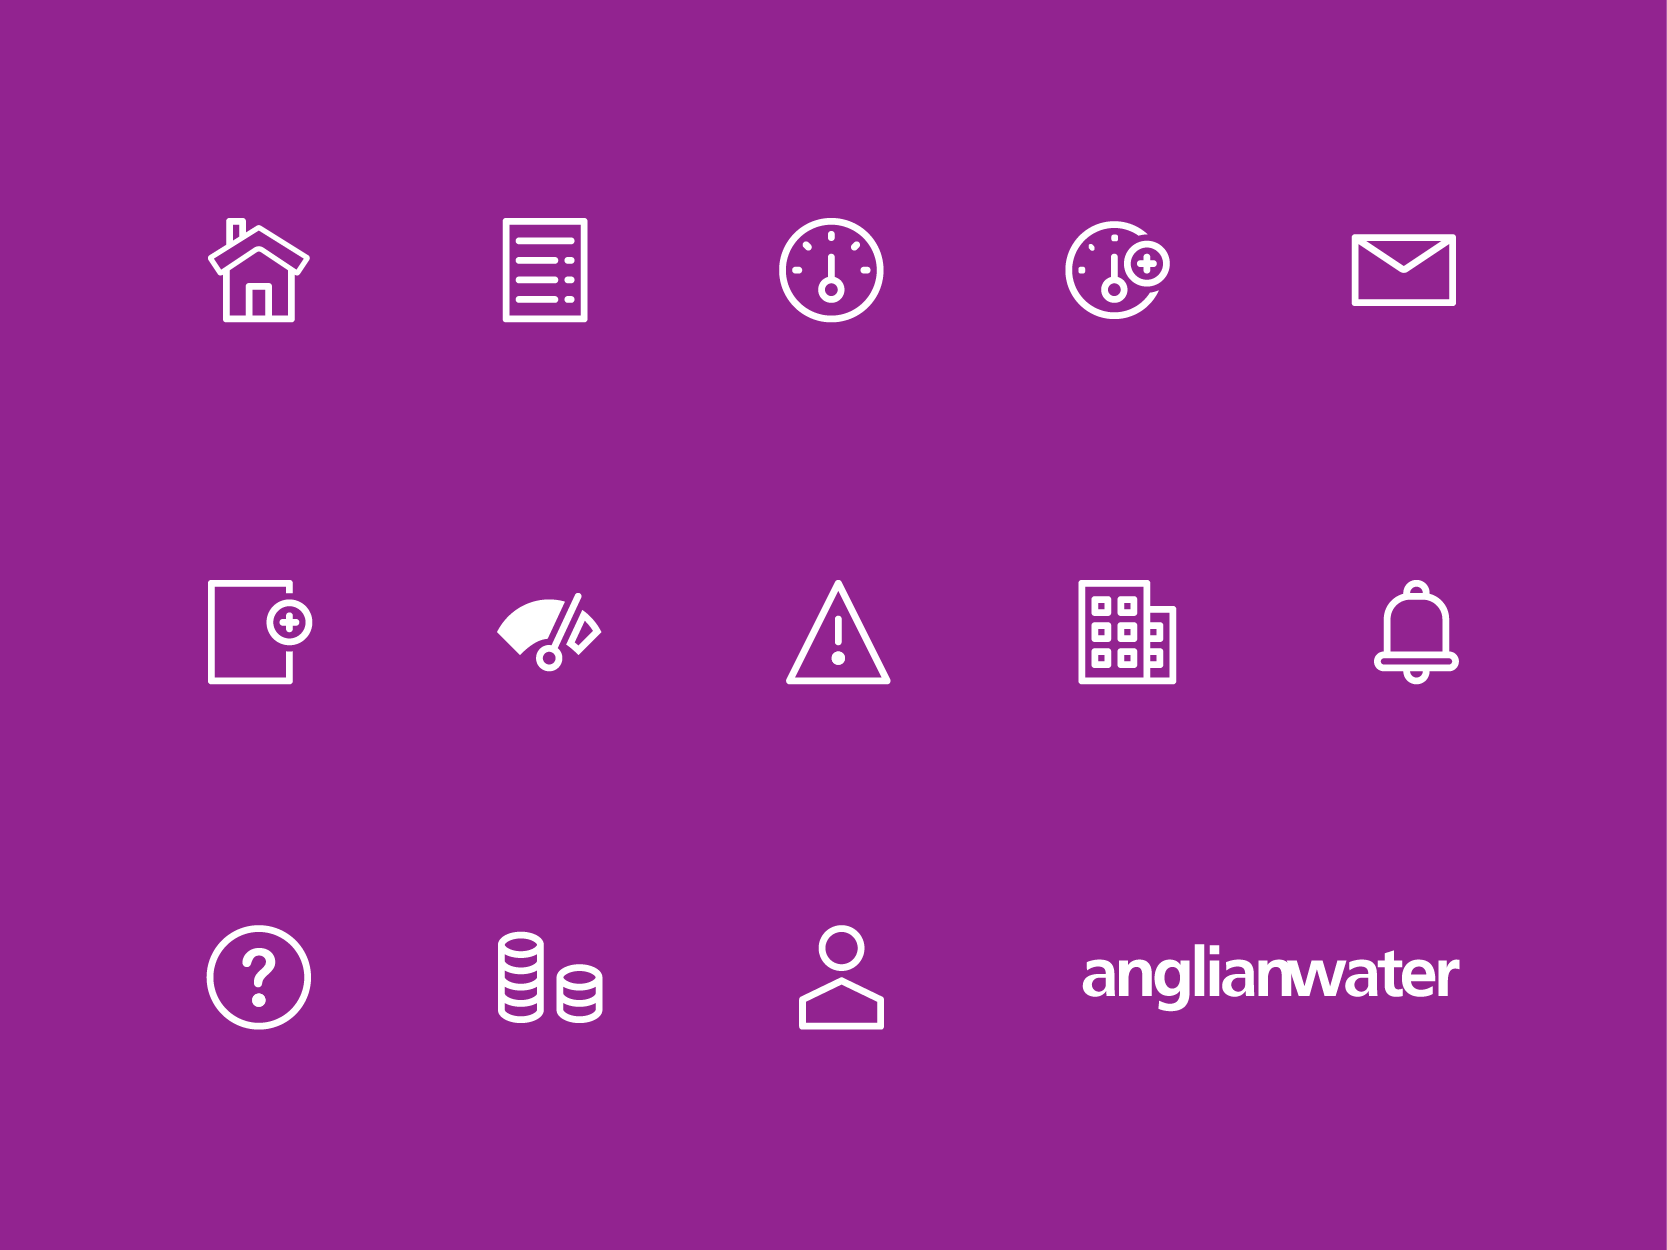 Anglia Water business icon set, by Chiara Mensa for Onespacemedia